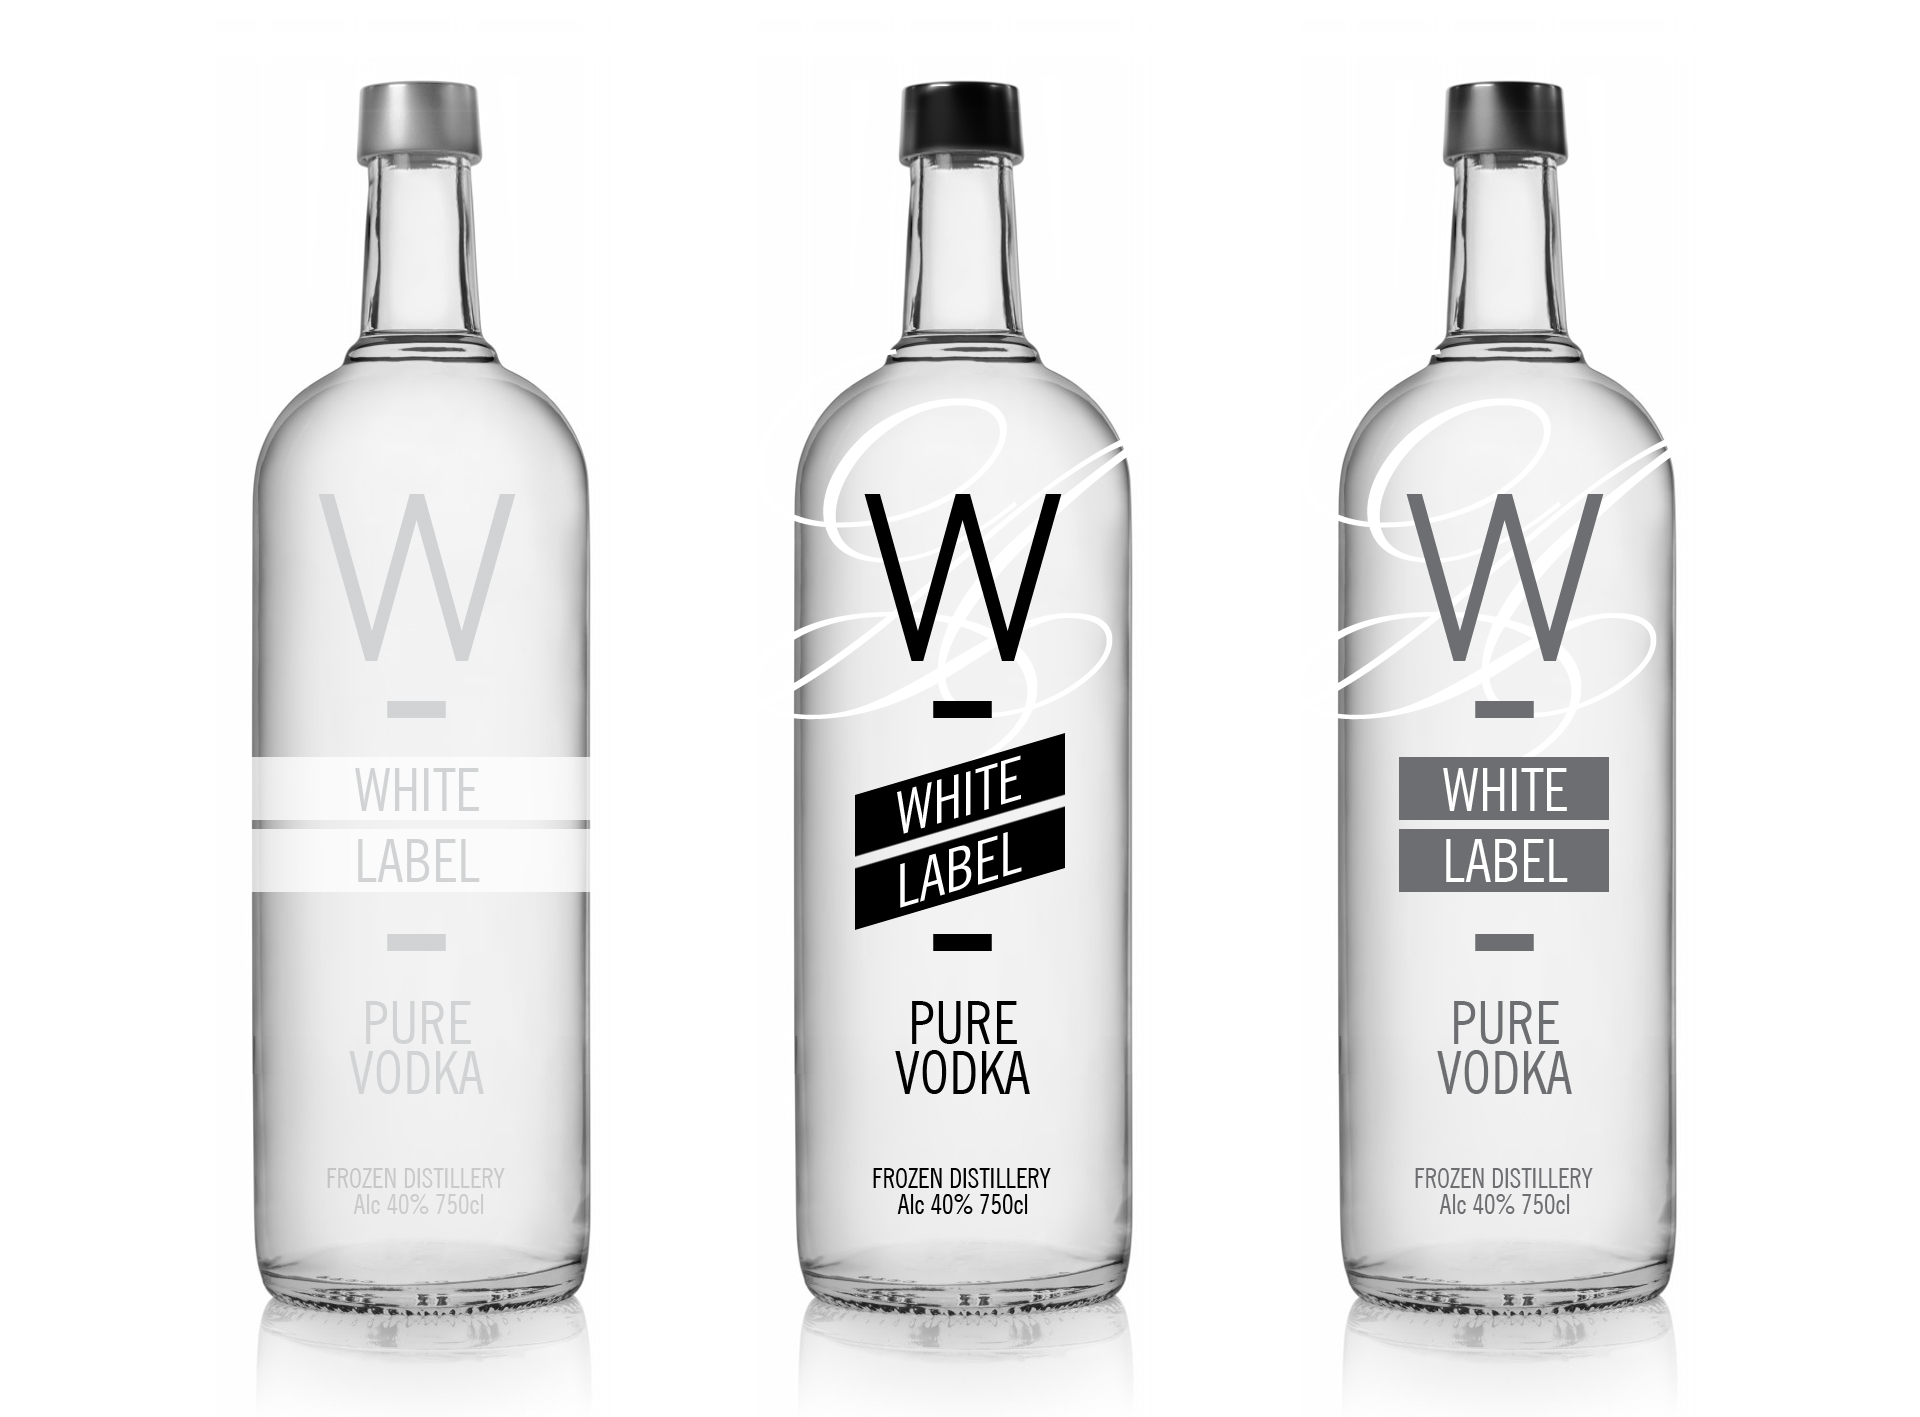 W-BRANDED-BOTTLE-PURE-VODKA-BY-GEORGE-DIMOPOULOS-001